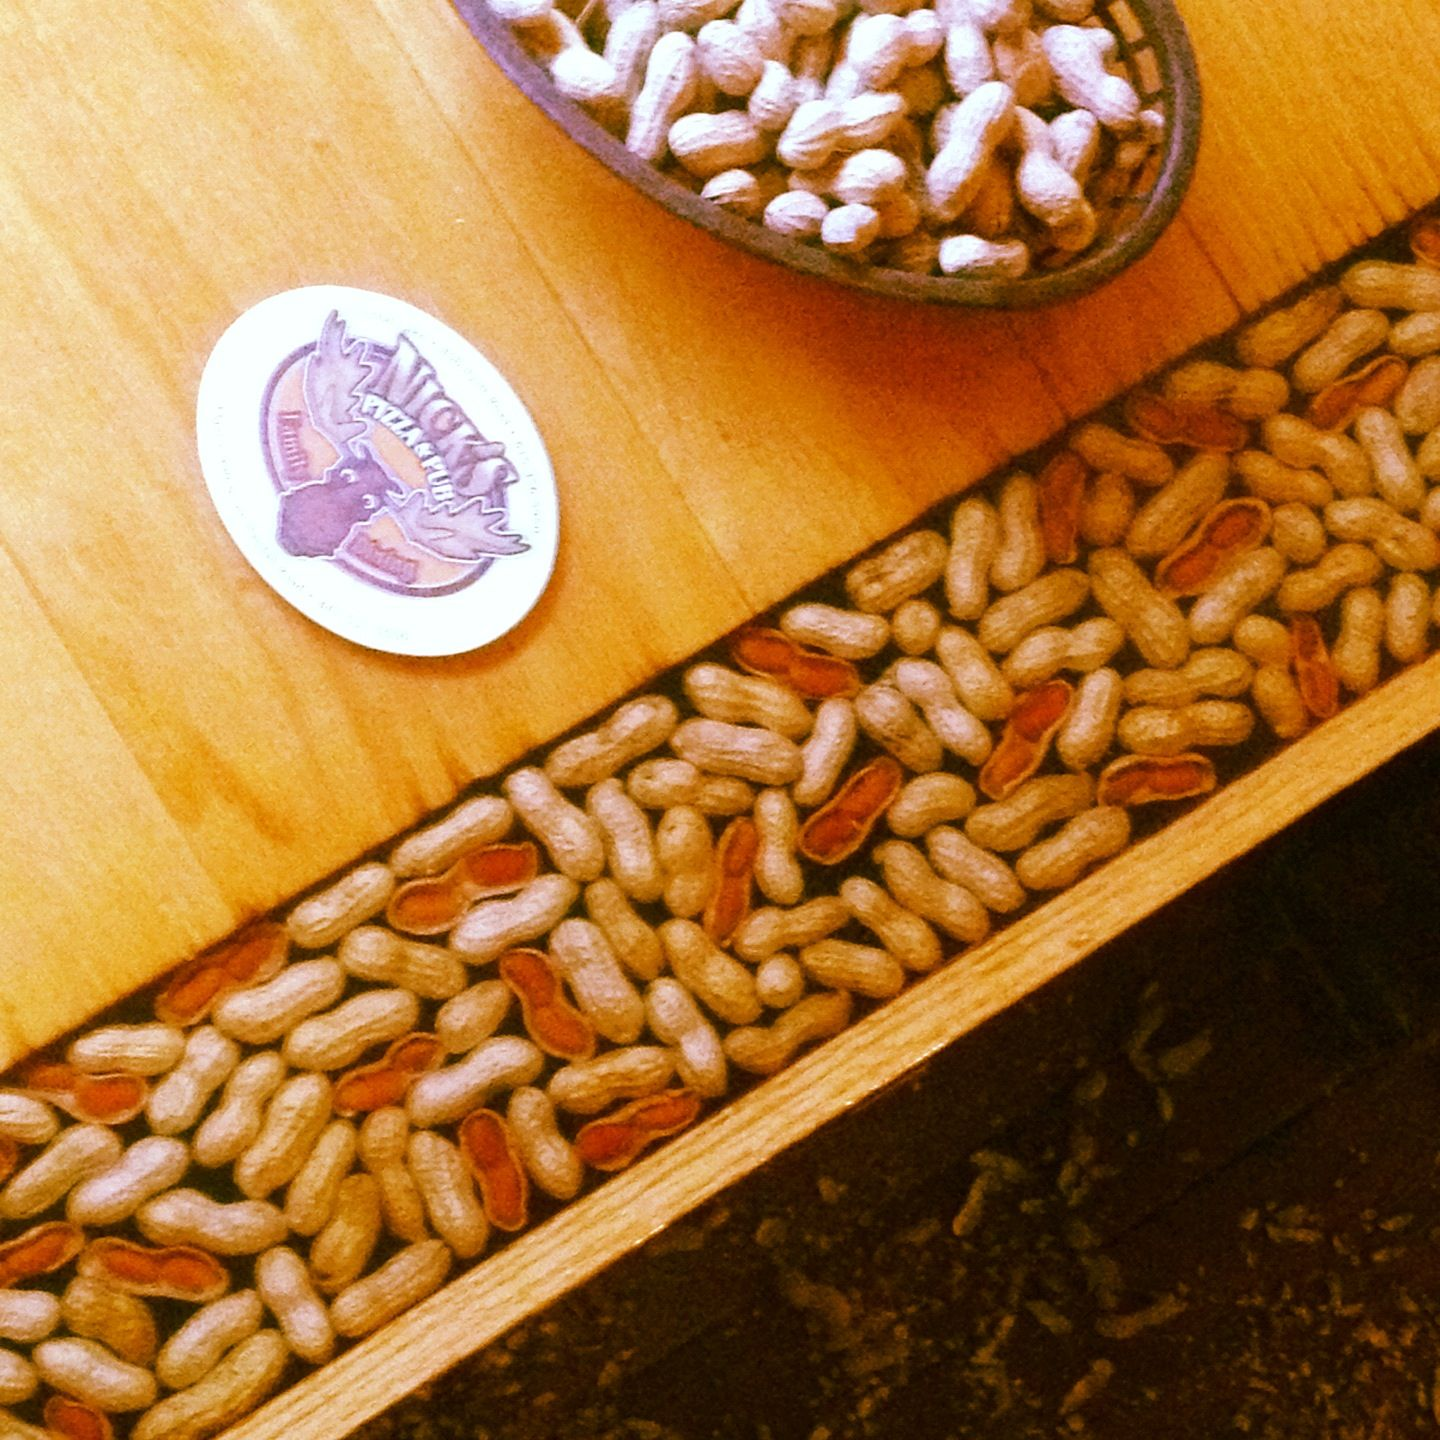 Peanuts in the table, peanuts EVERYWHERE!